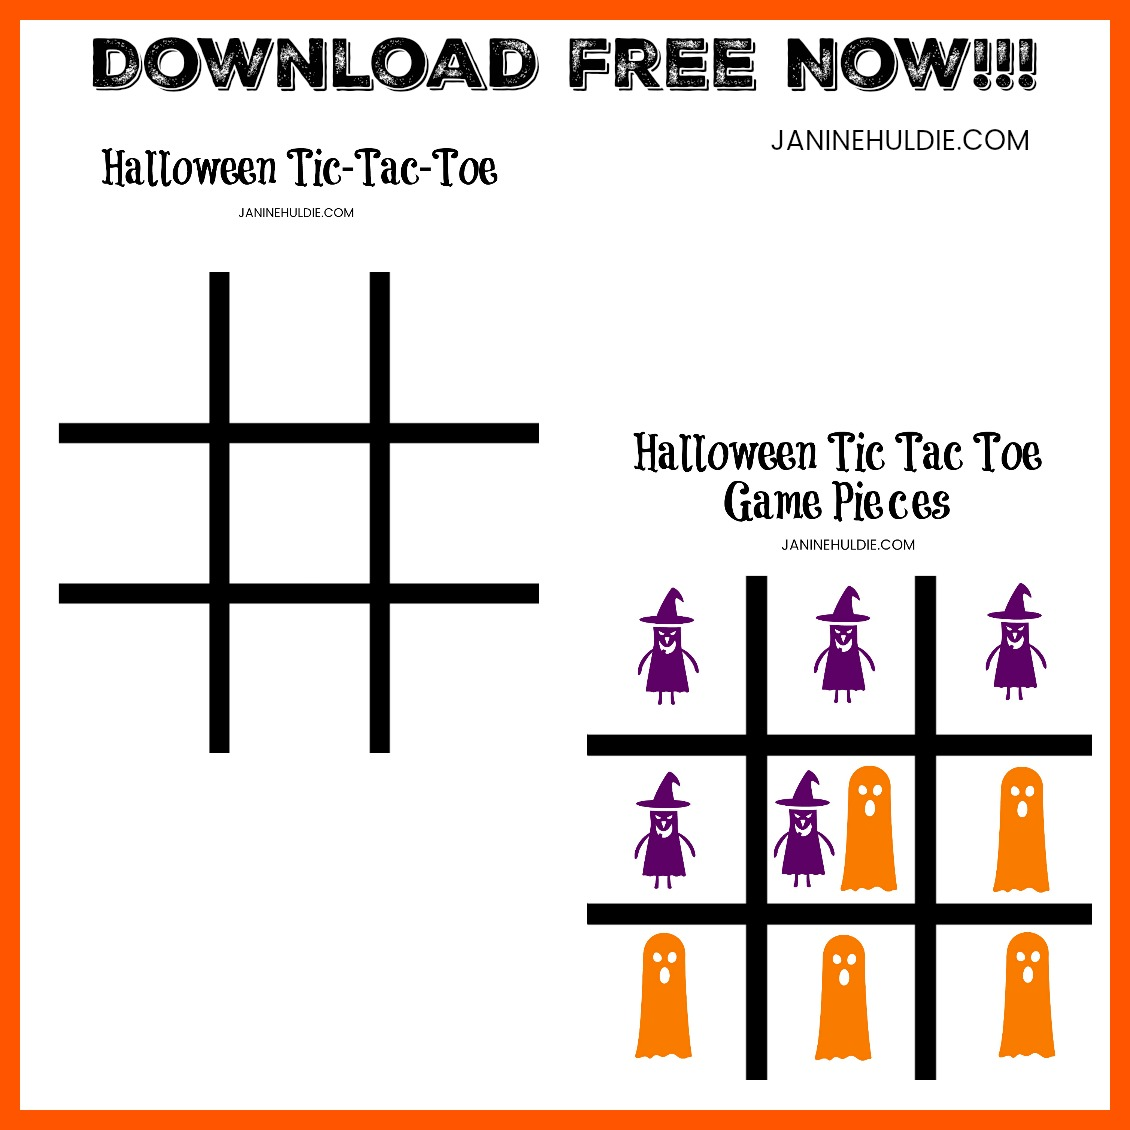 Halloween Game Tic Tac Toe Square Download Image